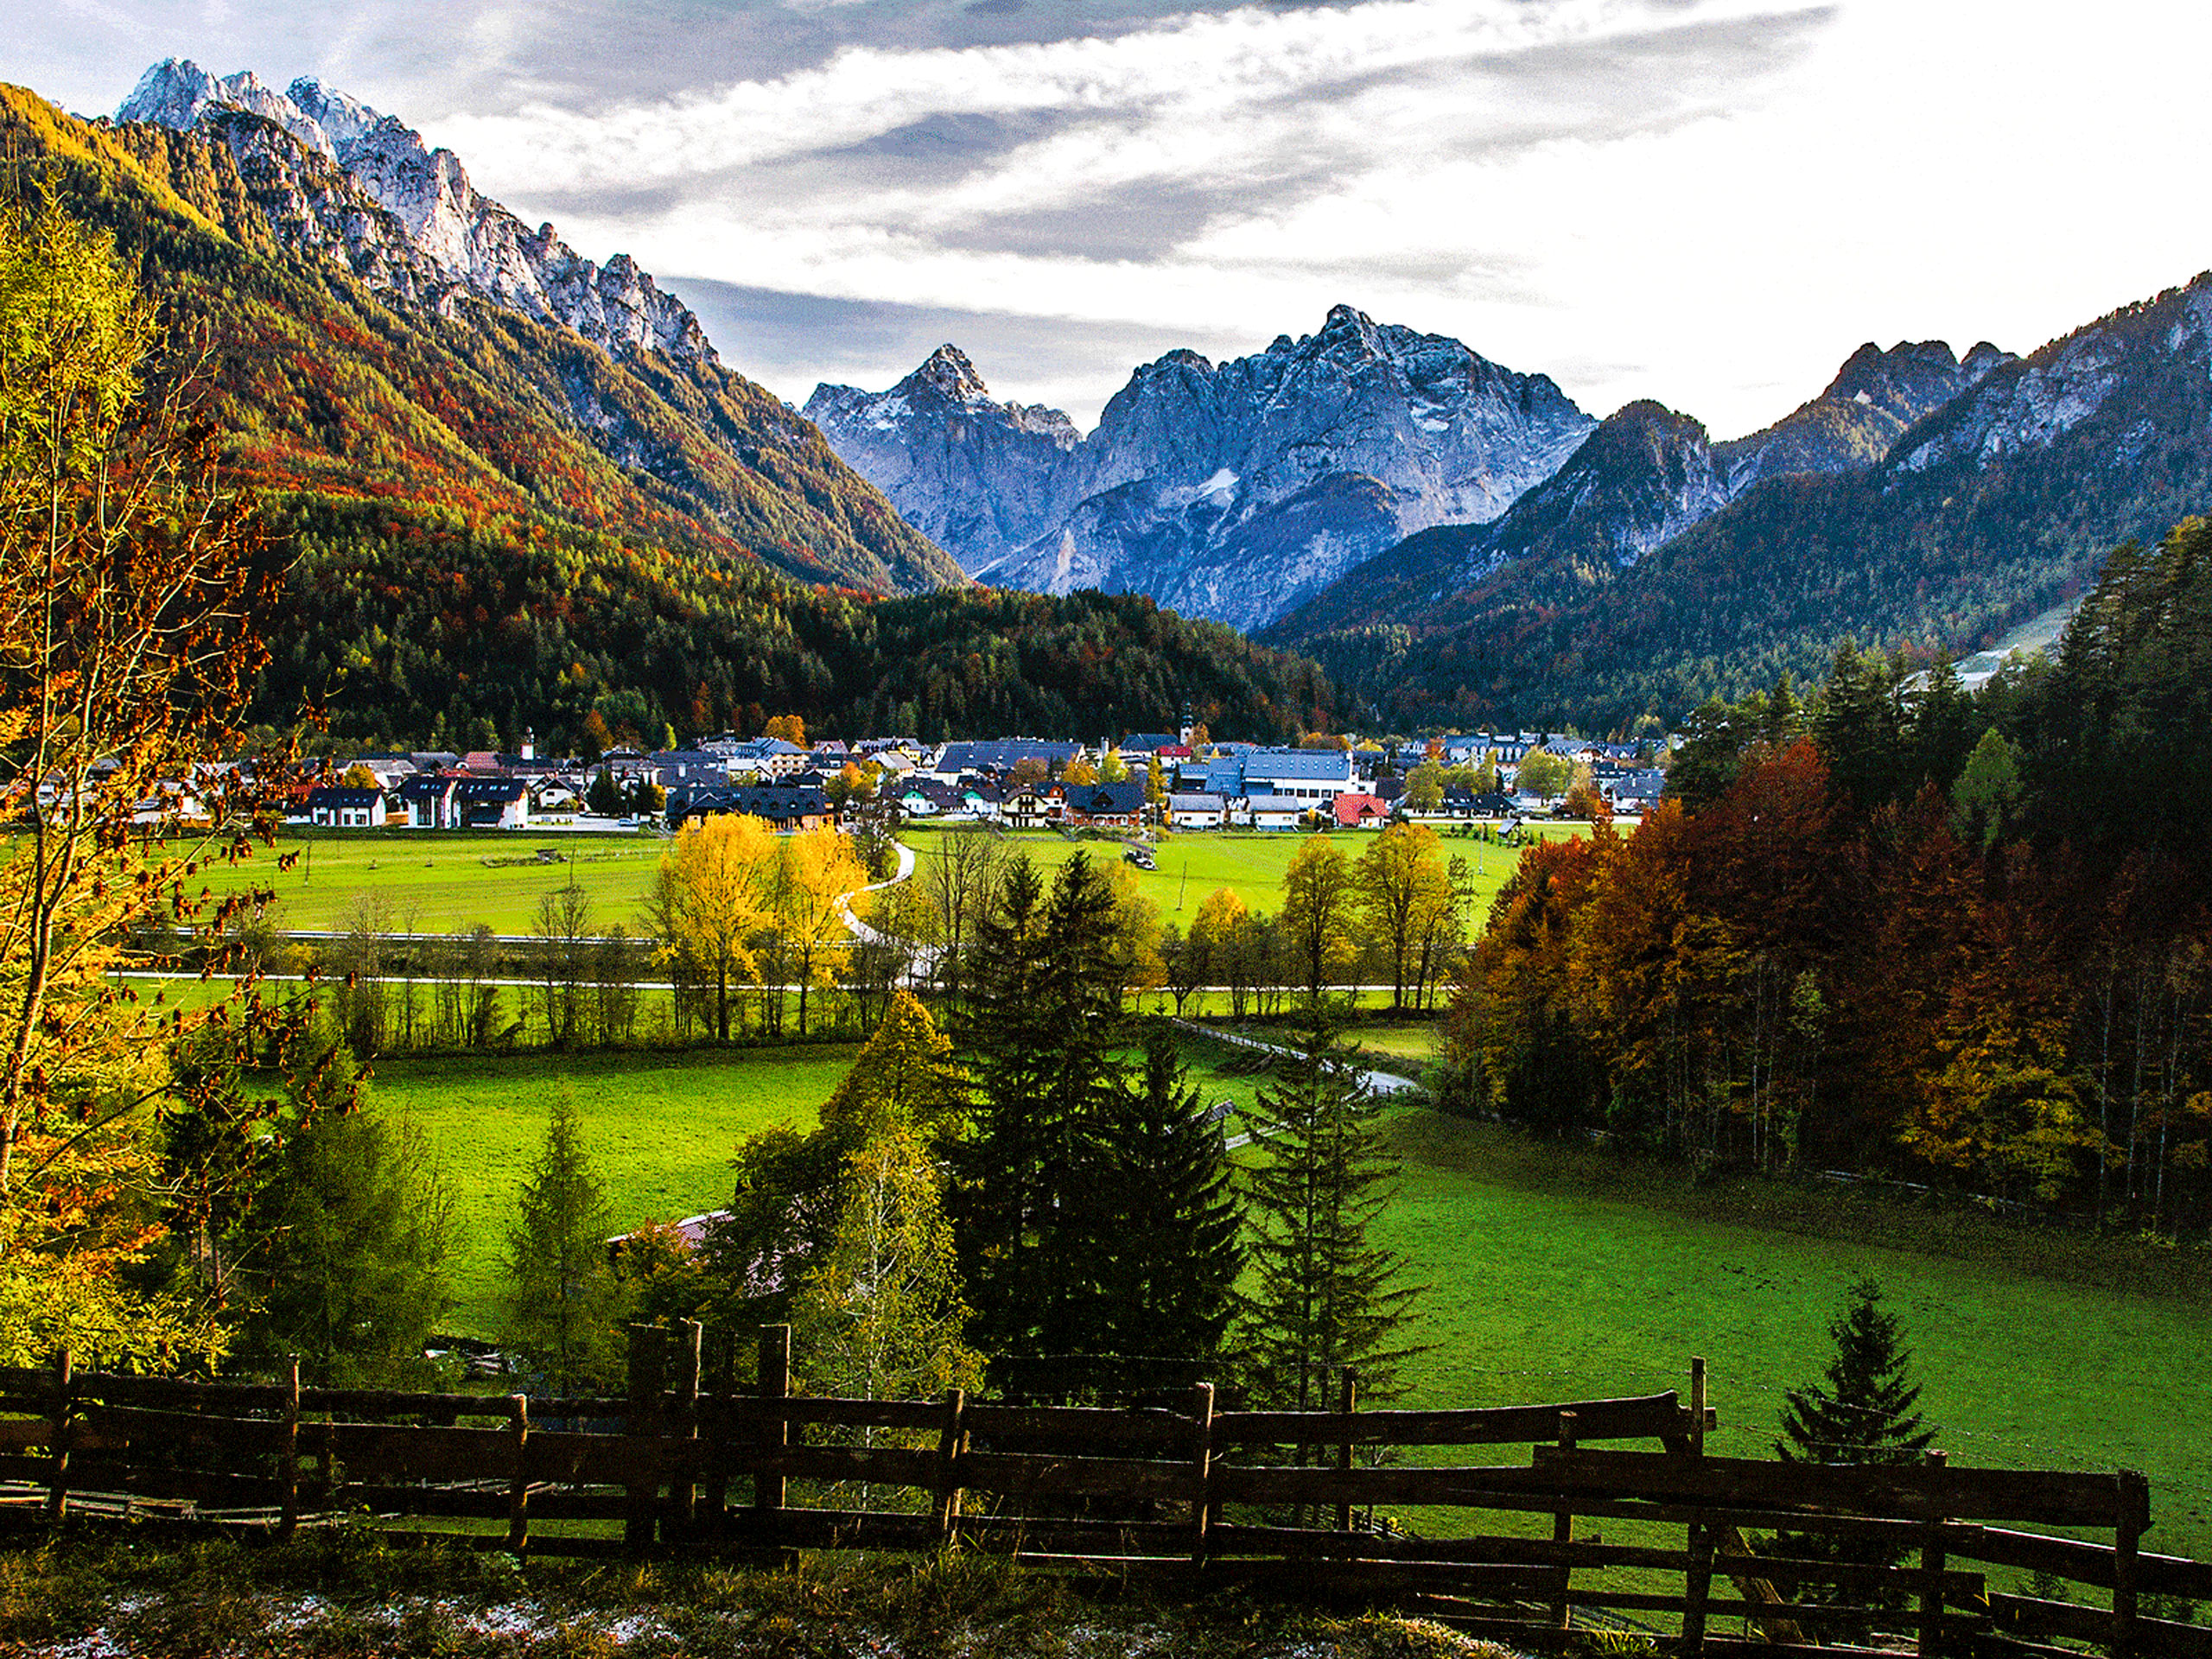 Mountains city landscape in Slovenia